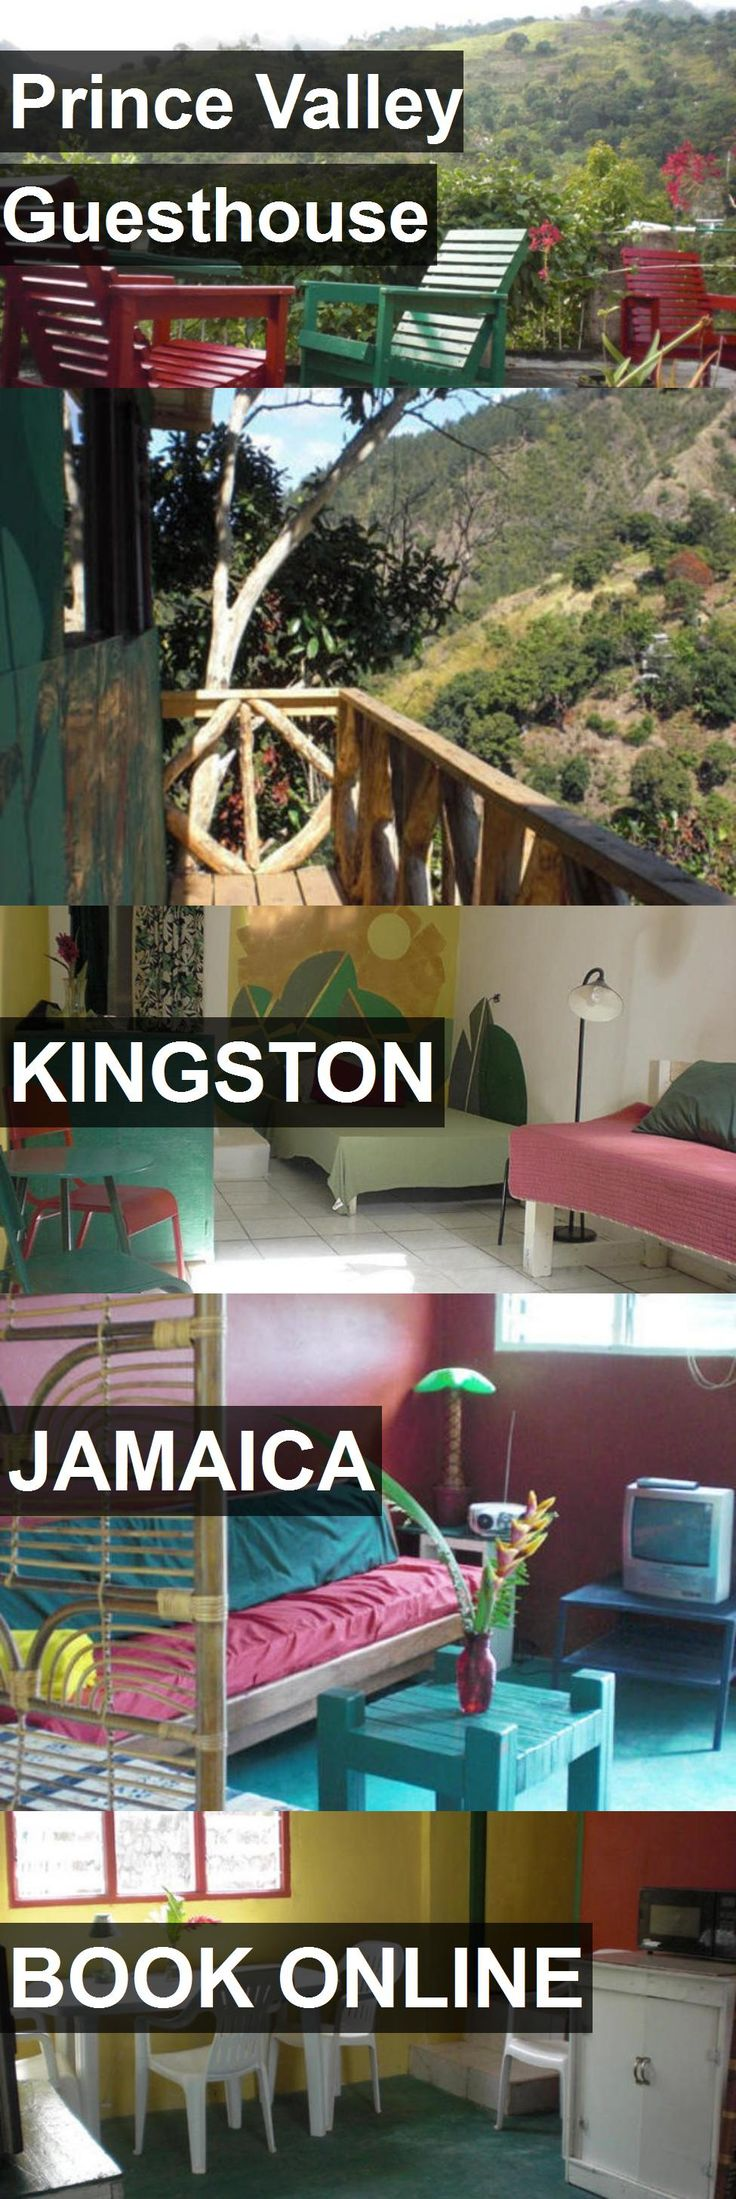 Hotel Prince Valley Guesthouse in Kingston, Jamaica. For more information, photos, reviews and best prices please follow the link. #Jamaica #Kingston #travel #vacation #hotel